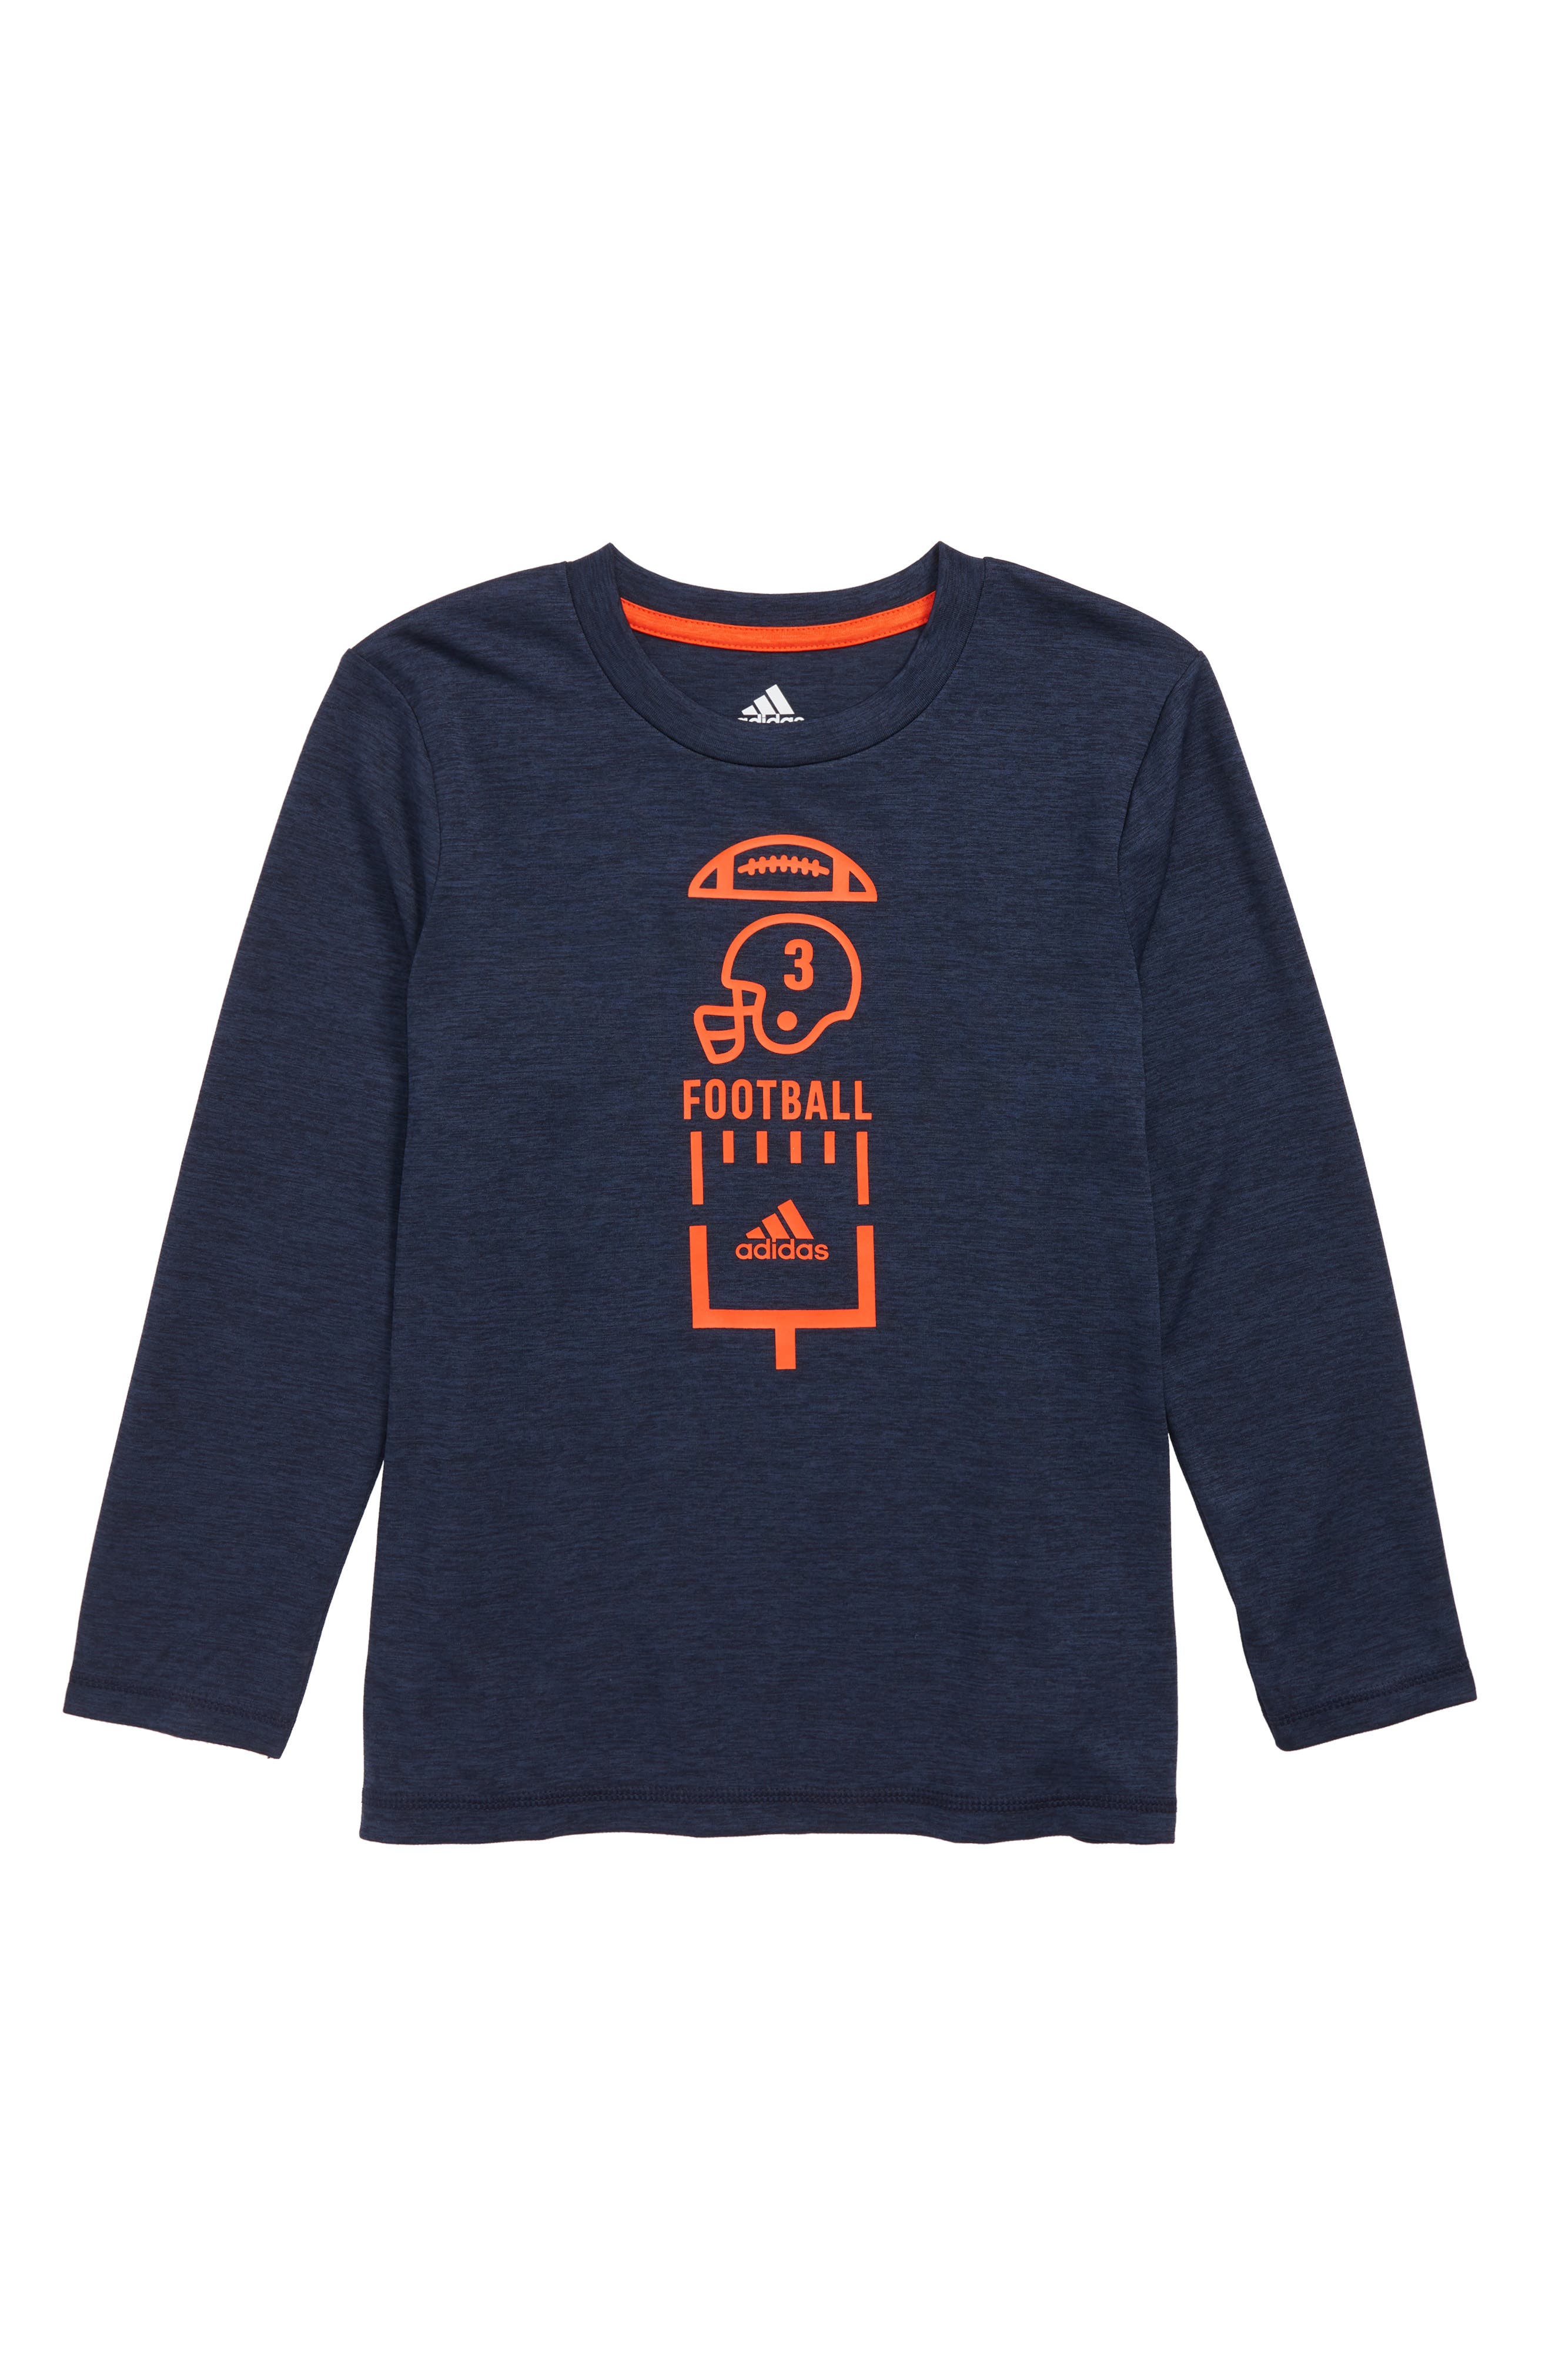 Football Vertical Collage T-Shirt,                         Main,                         color, 412